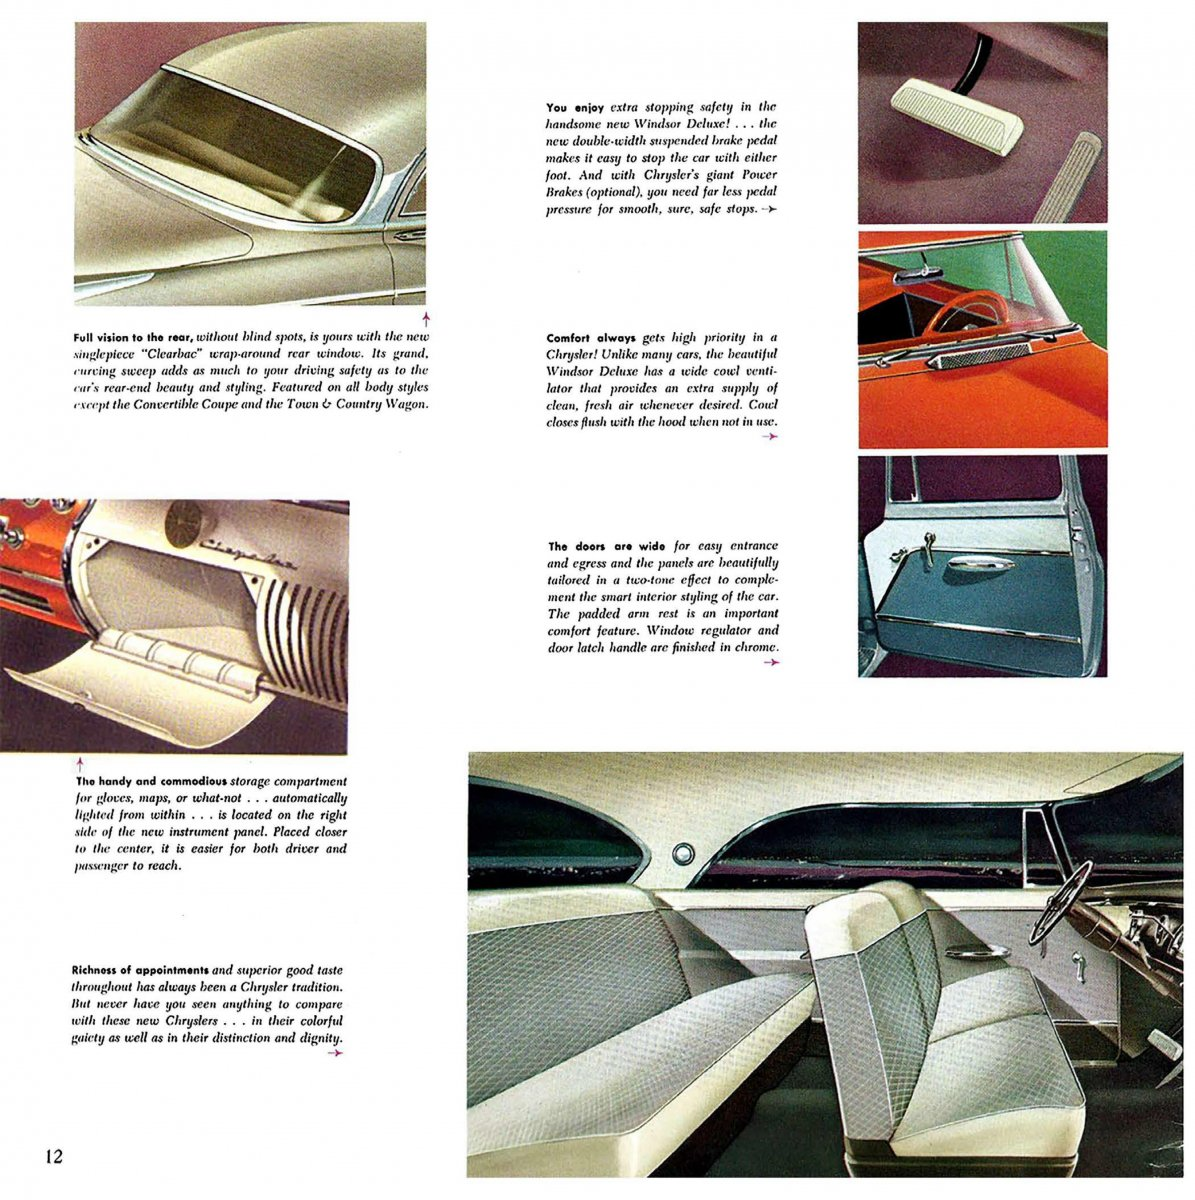 1955_Chrysler_Windsor_Brochure_1-16_12.jpg